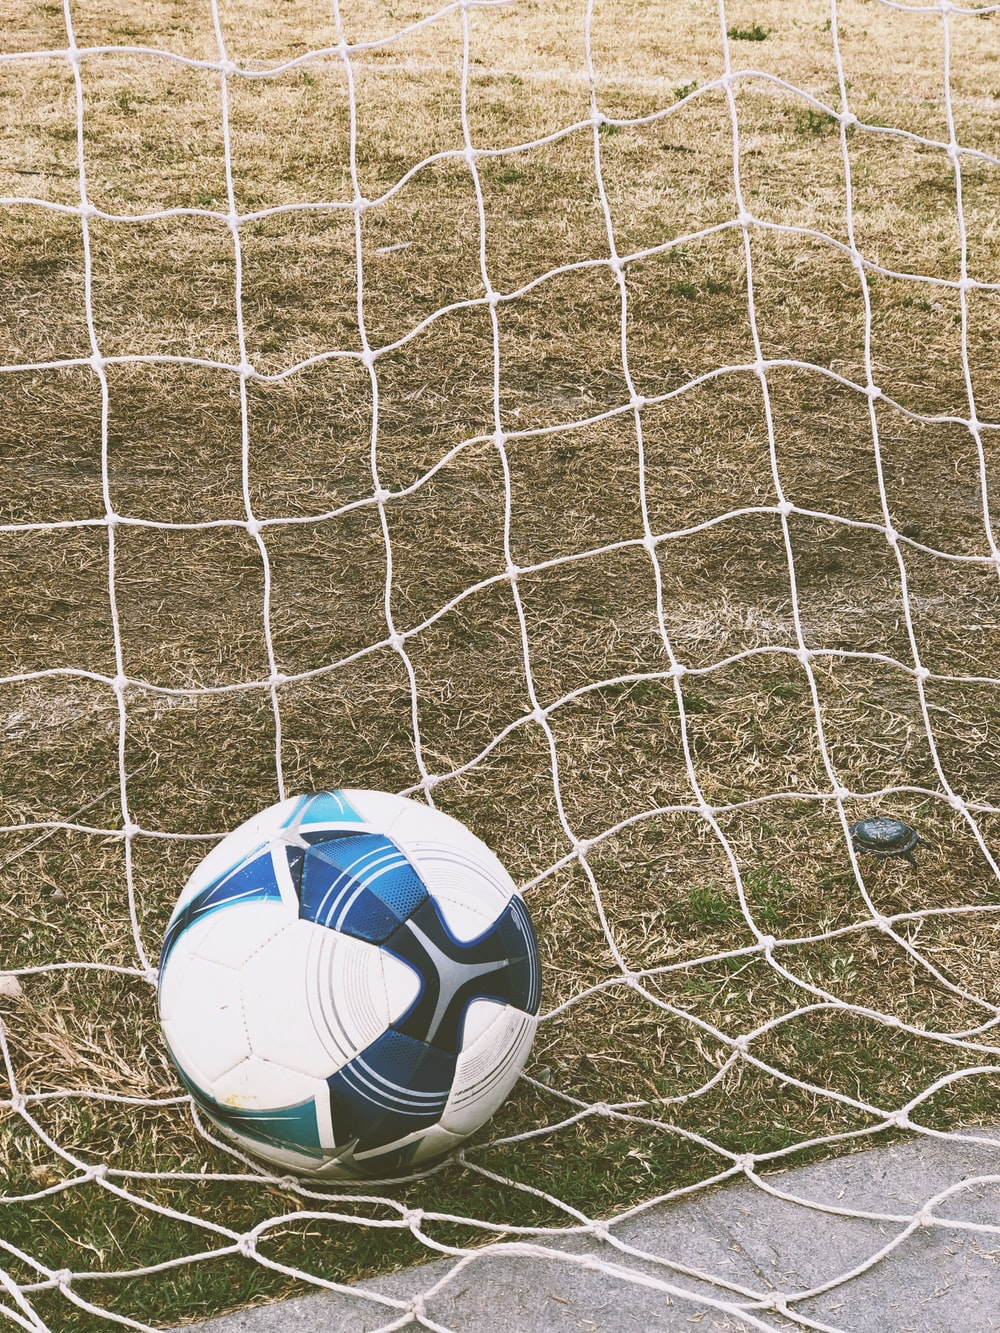 white and blue soccer ball on ground inside goal